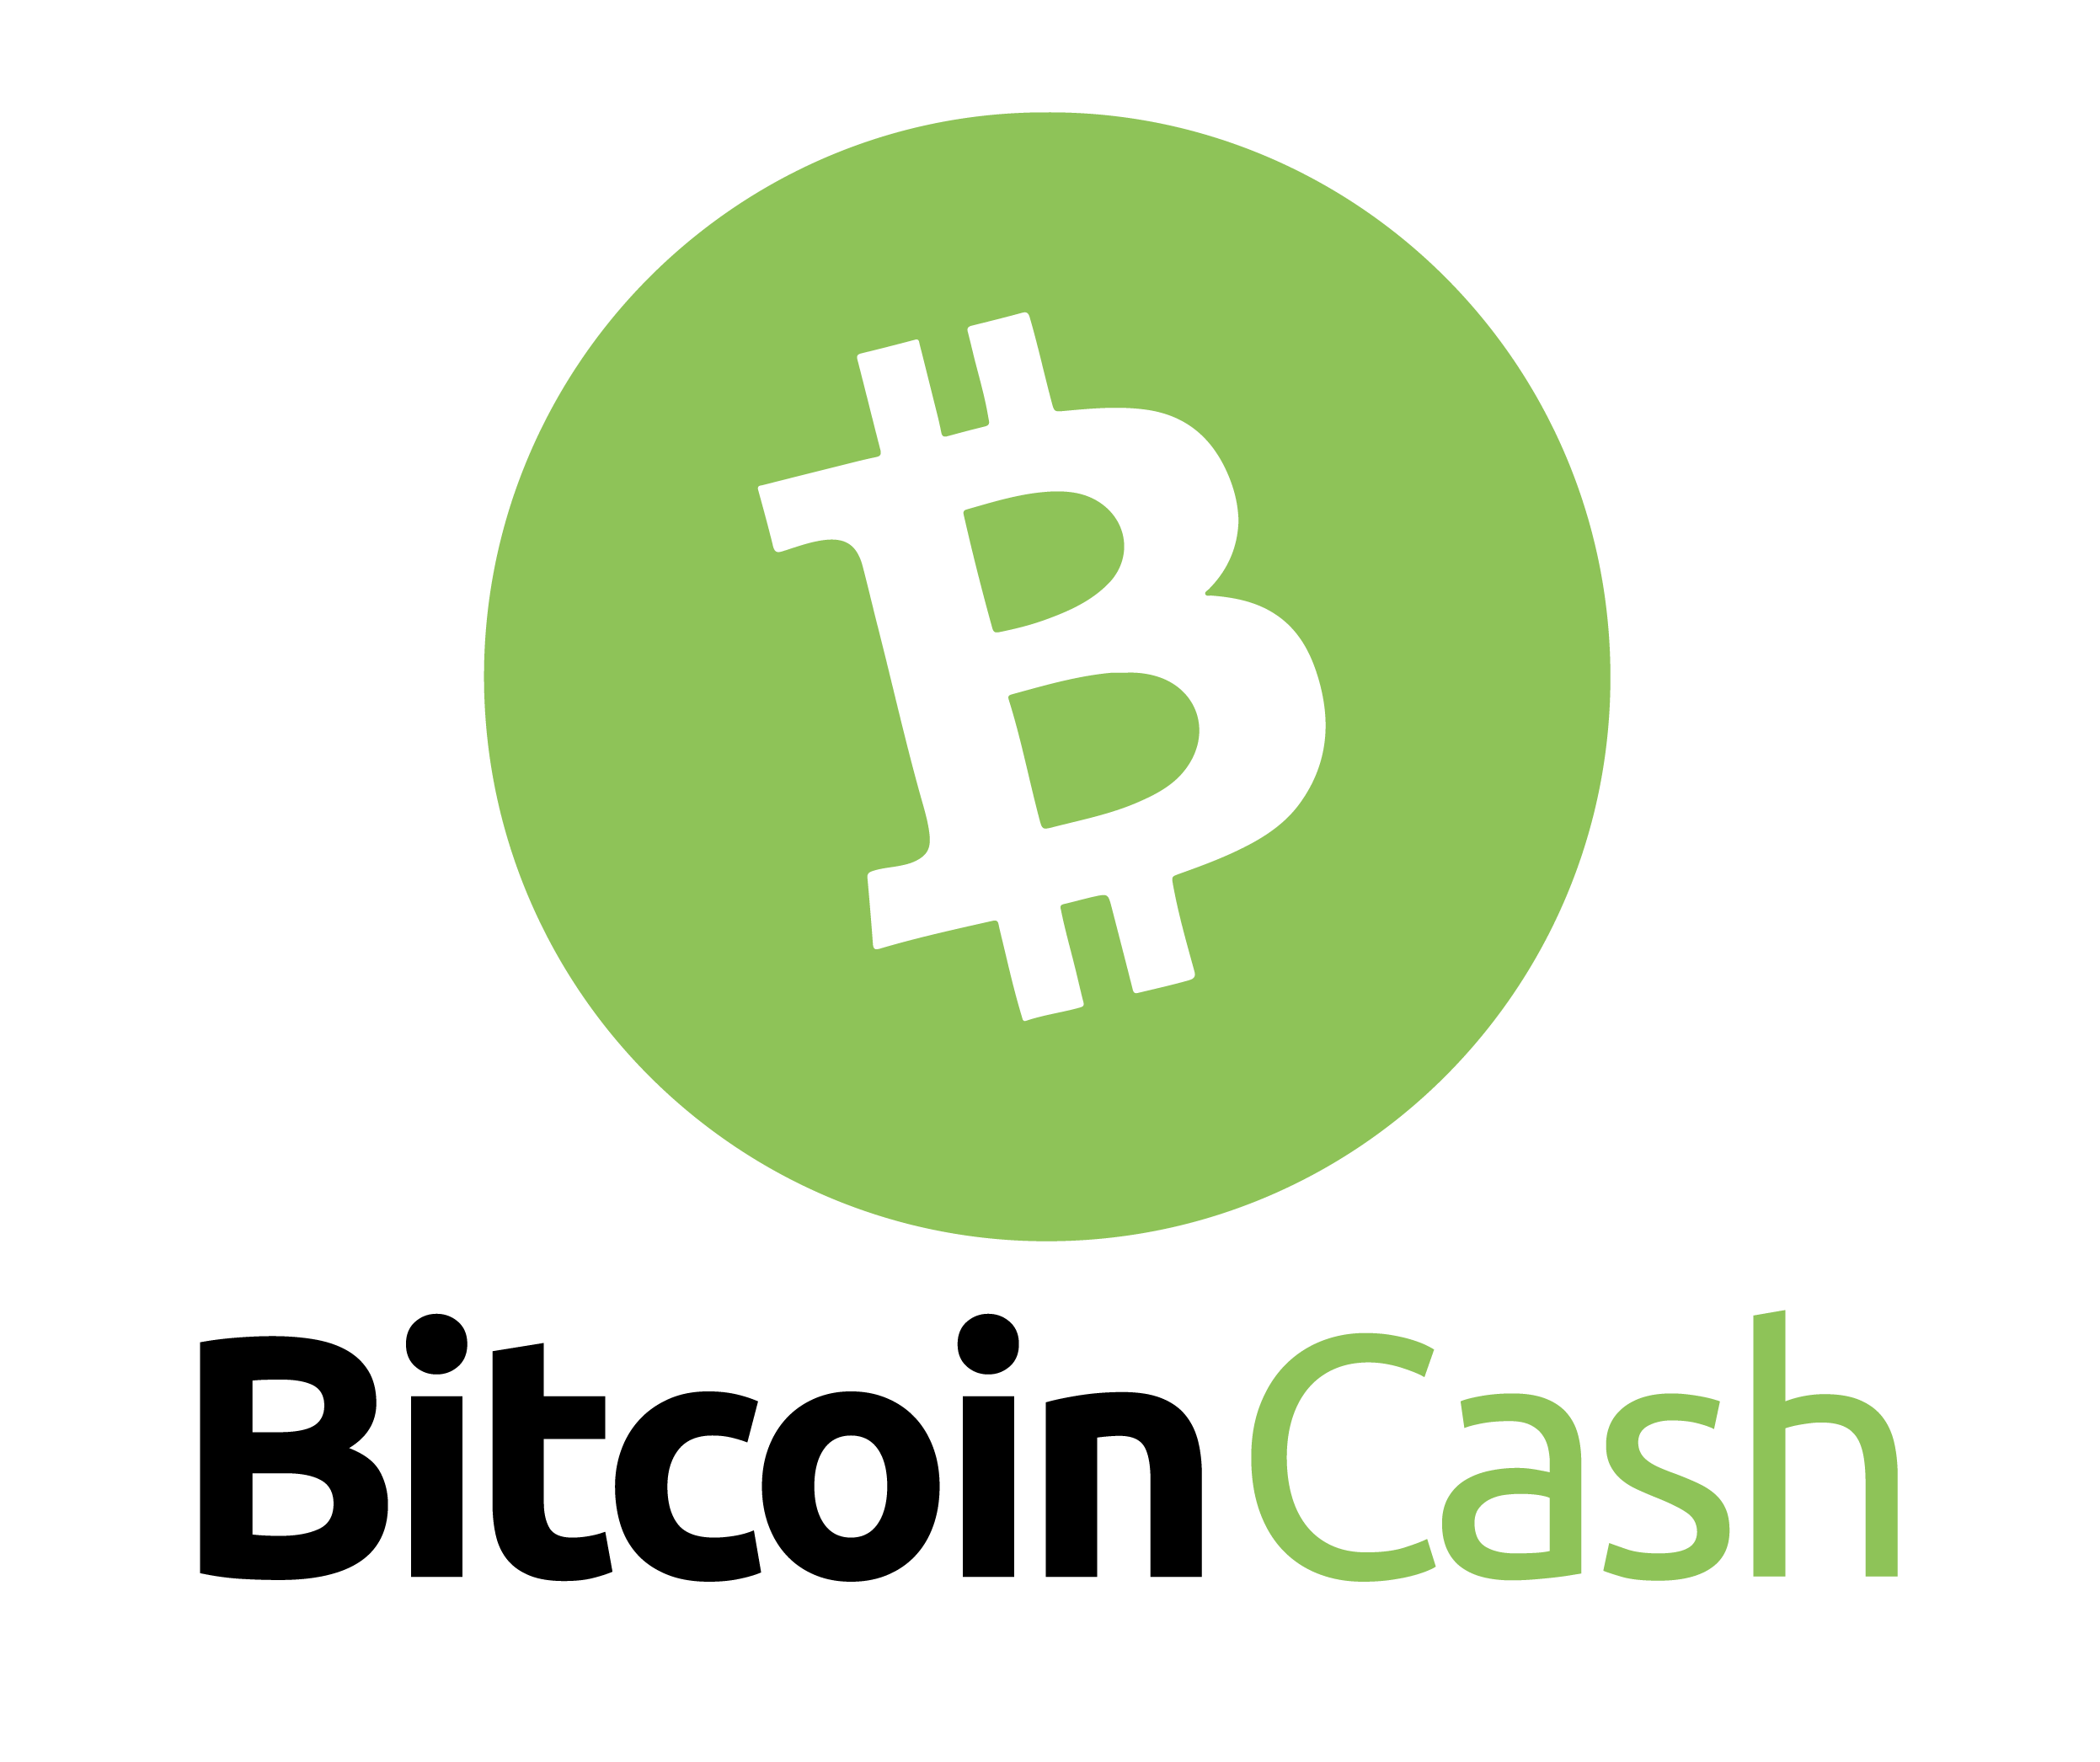 Cryptocurrency Money Litecoin Bitcoin Cash PNG File HD PNG Image